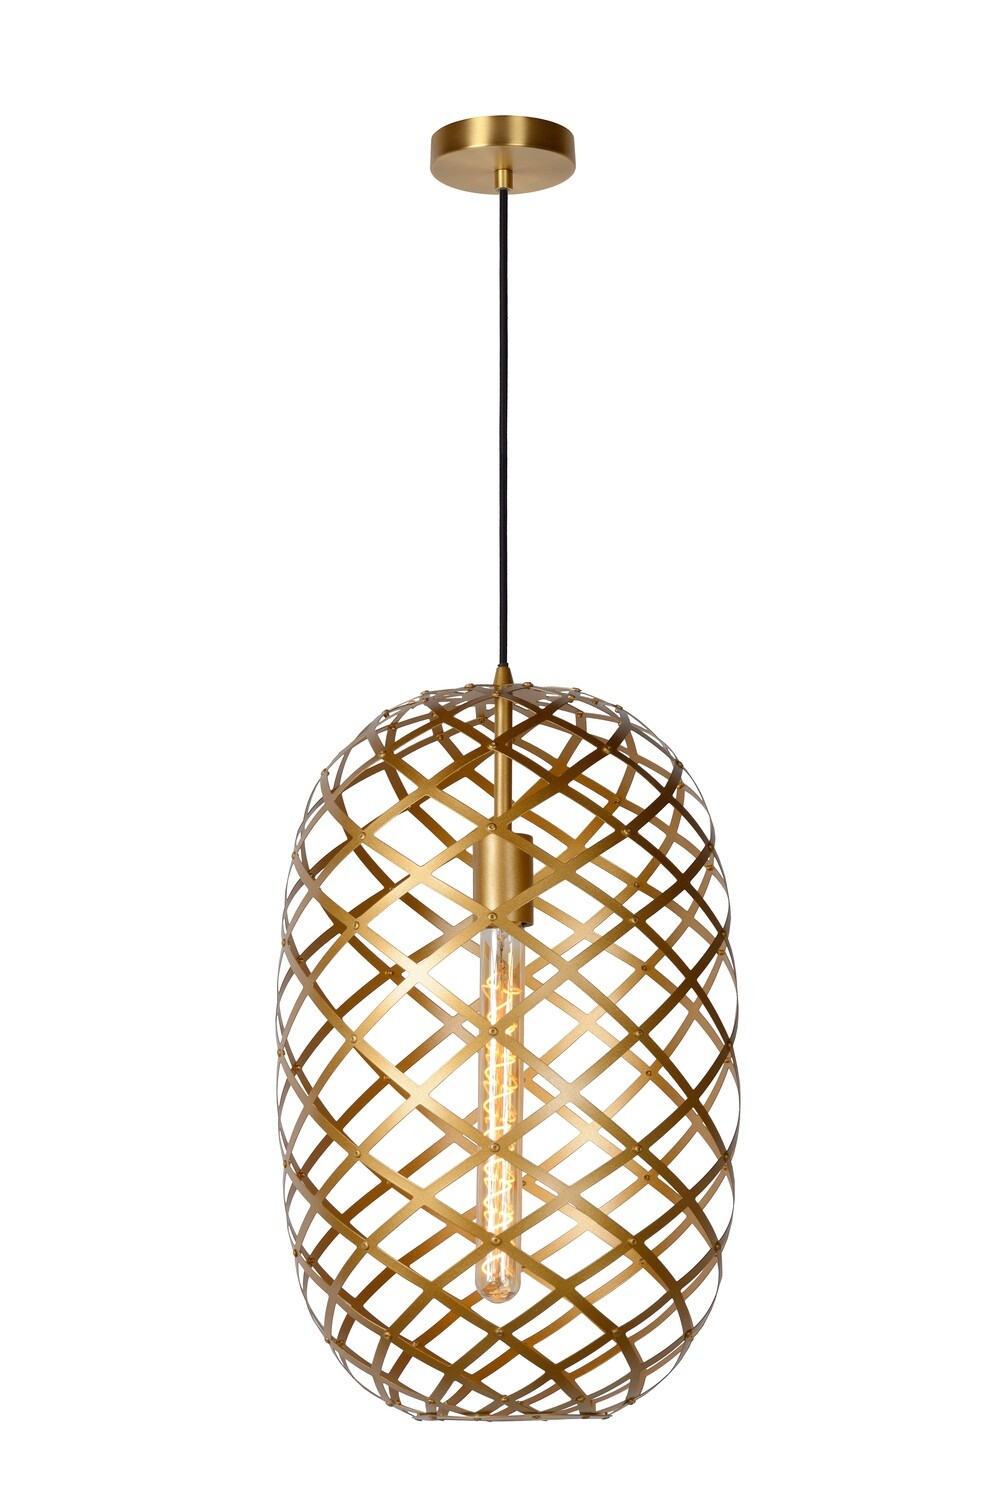 WOLFRAM Pendant light Ø 32 cm 1xE27 Matt Gold / Brass